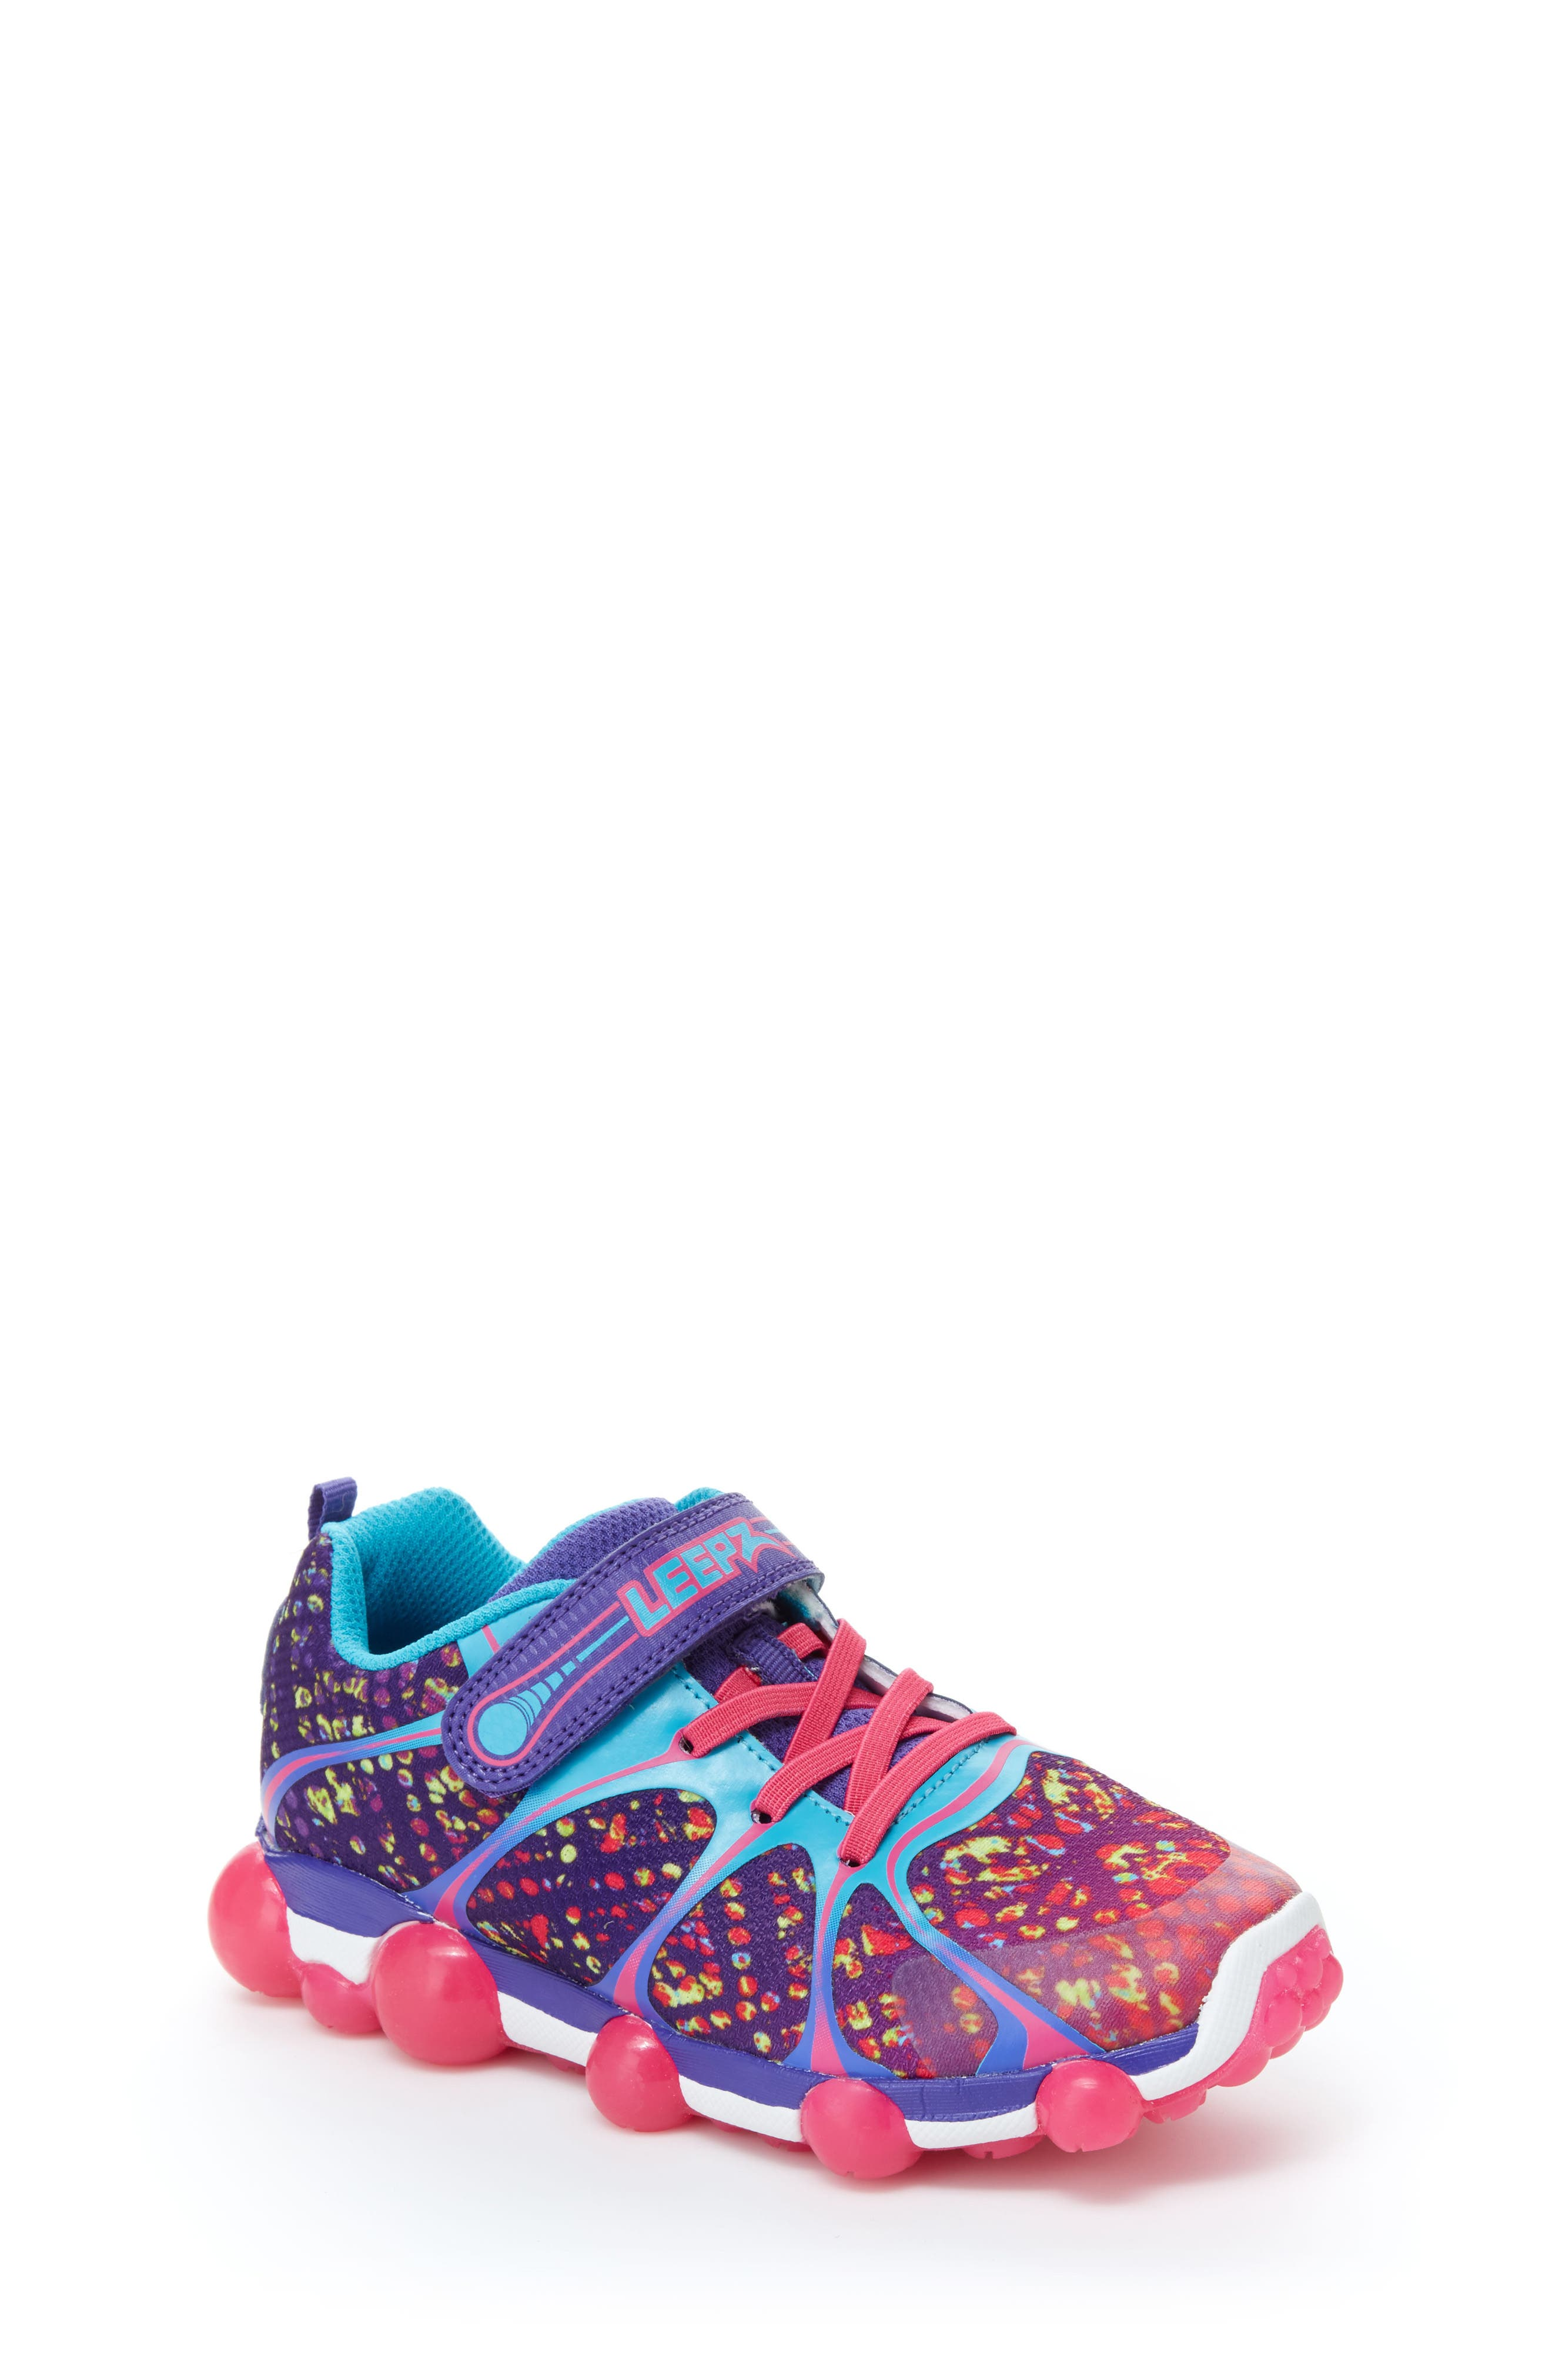 STRIDE RITE 'Leepz' Light-Up Sneaker, Main, color, 540